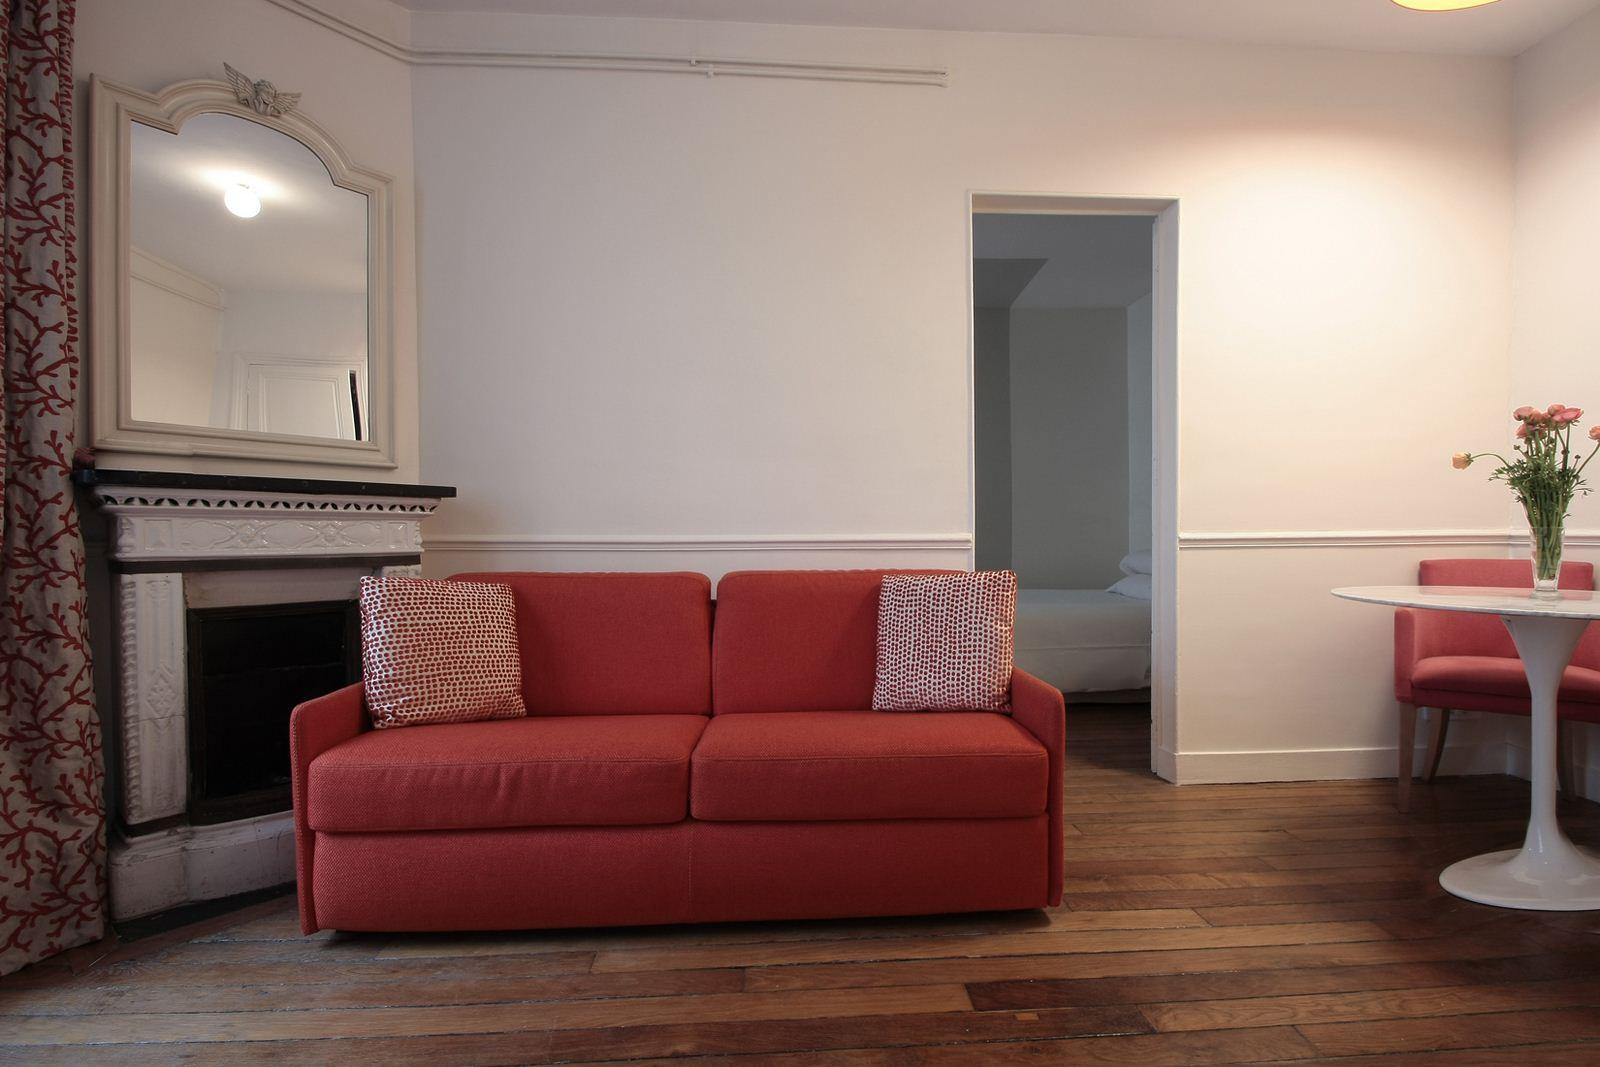 105400 - Bright and sophisticated apartment for 4 people in the Latin Quarter